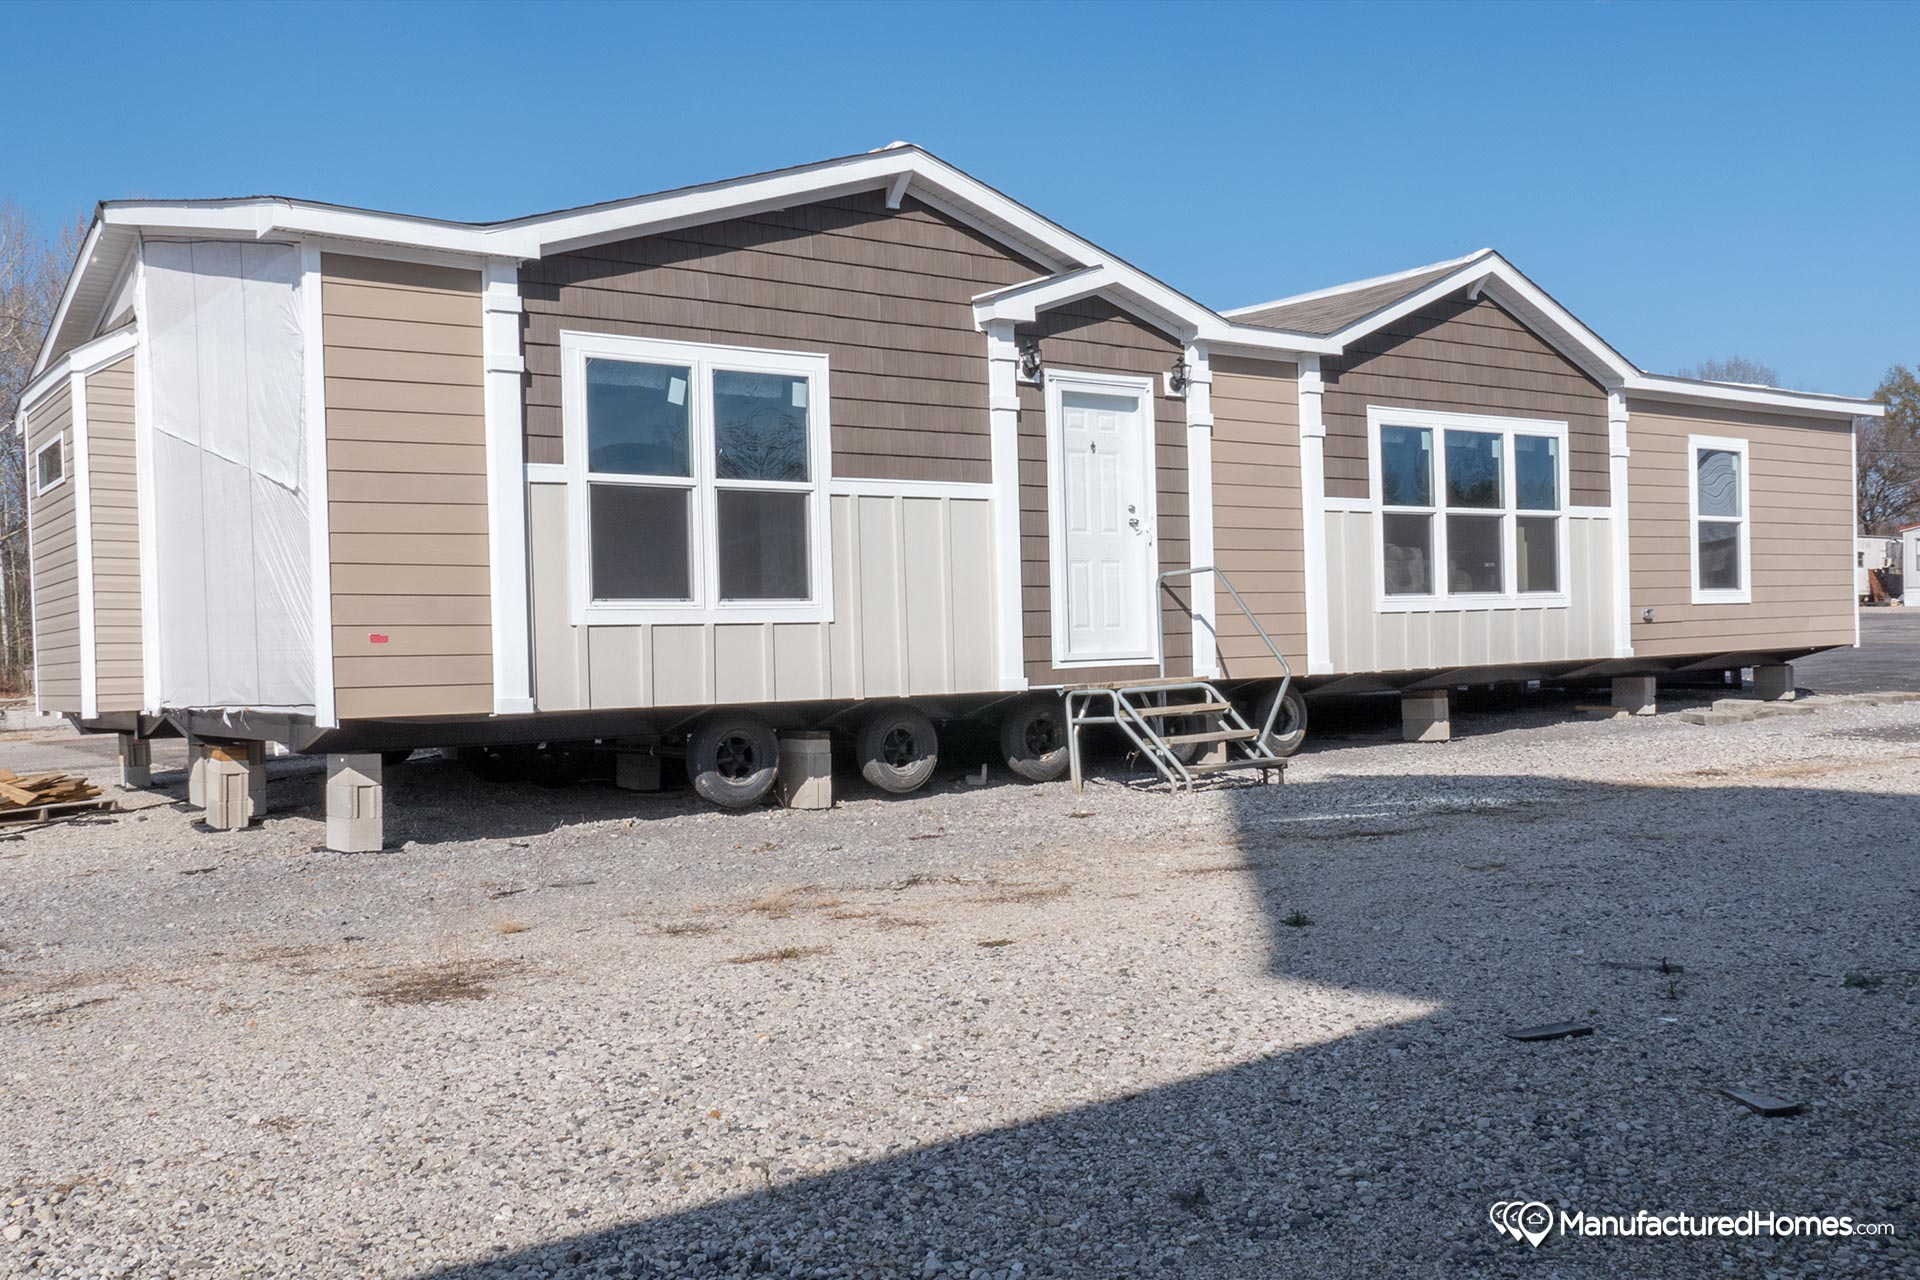 Manufactured Homes Modular Homes And Mobile Homes For Sale